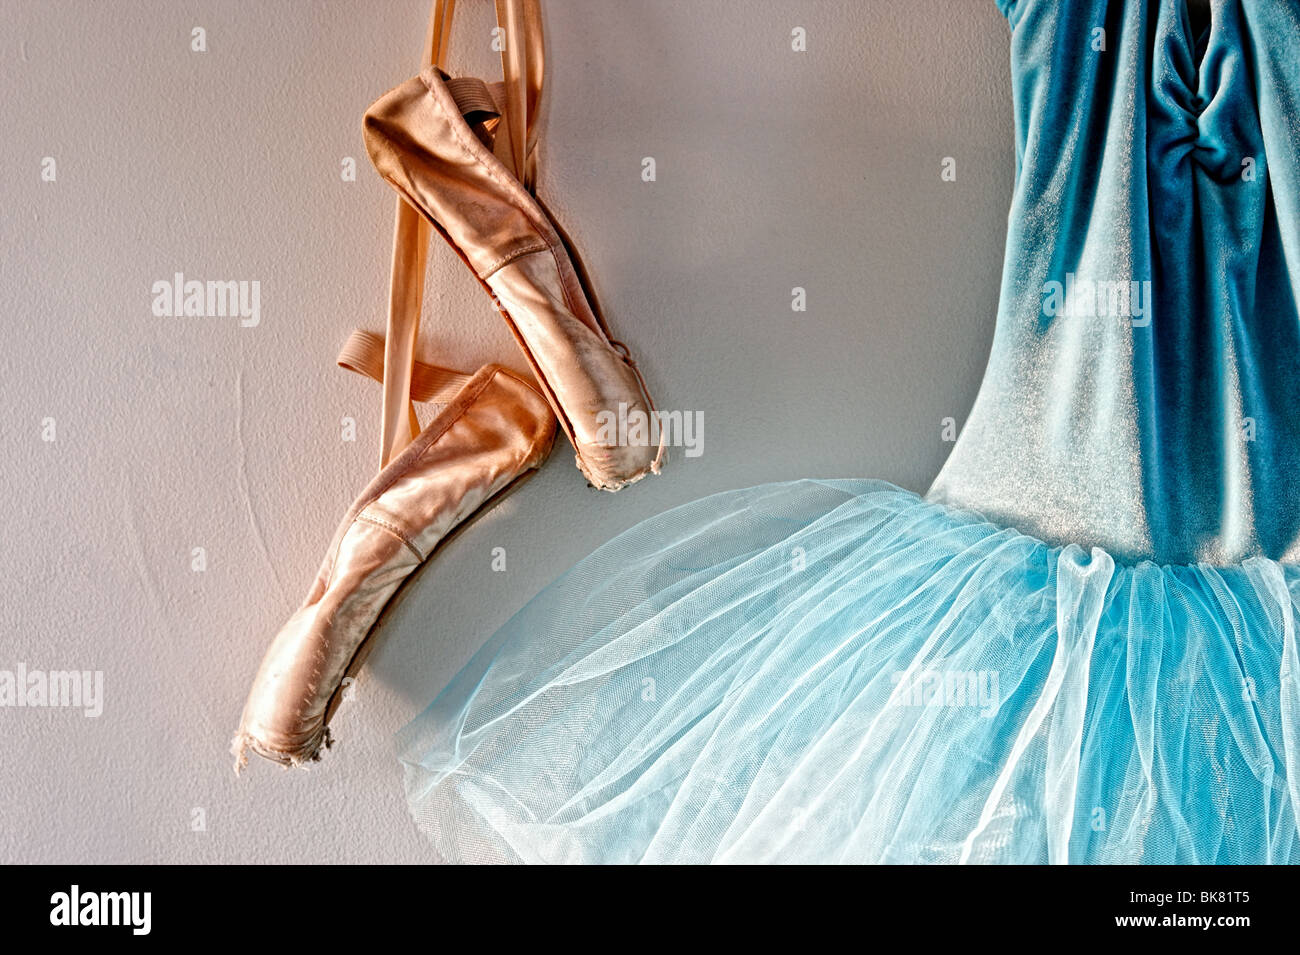 7a11b90e35b2 a blue velvet romantic tutu is hanging on a wall beside a worn pair of ballet  pointe shoes